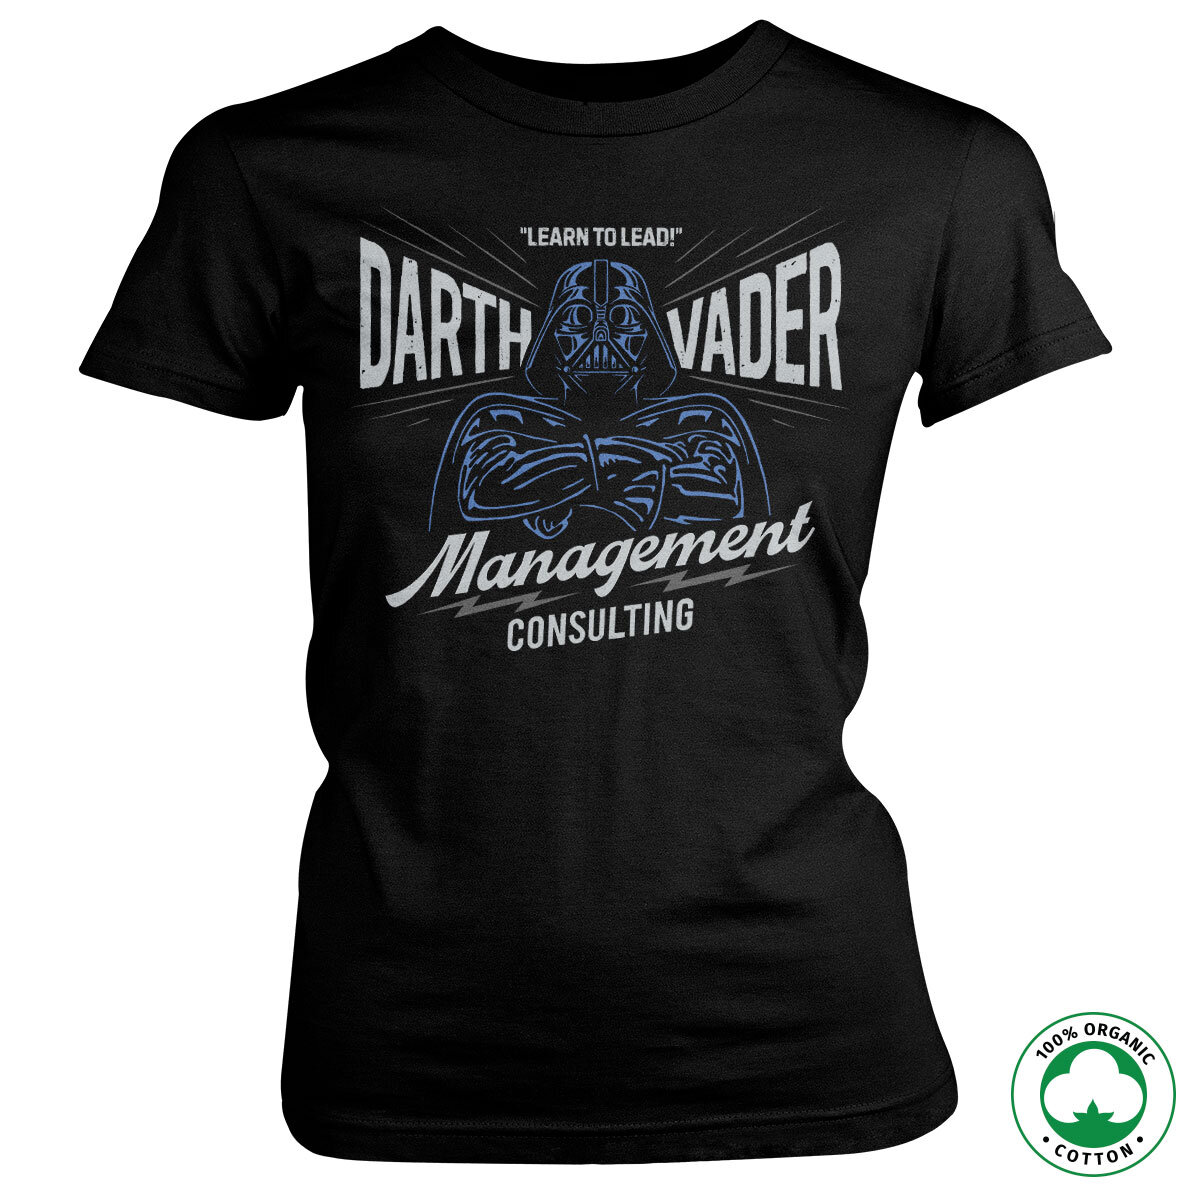 Darth Vader Management Consulting Organic Girly Tee